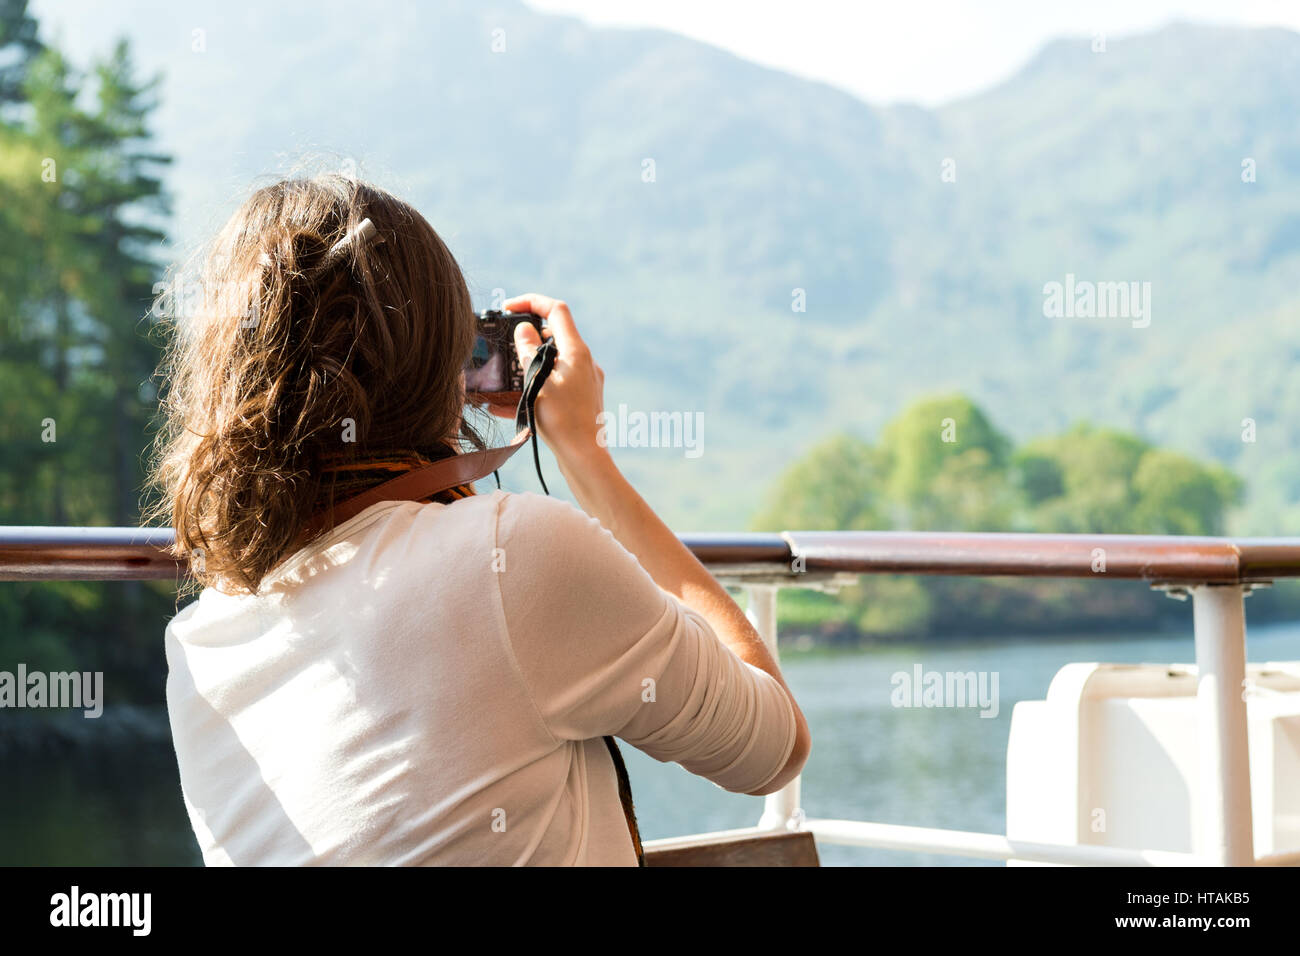 Unrecognisable young female enjoying boat ride, taking photographs, Loch Katrine, Scottish Highlands, UK Stock Photo